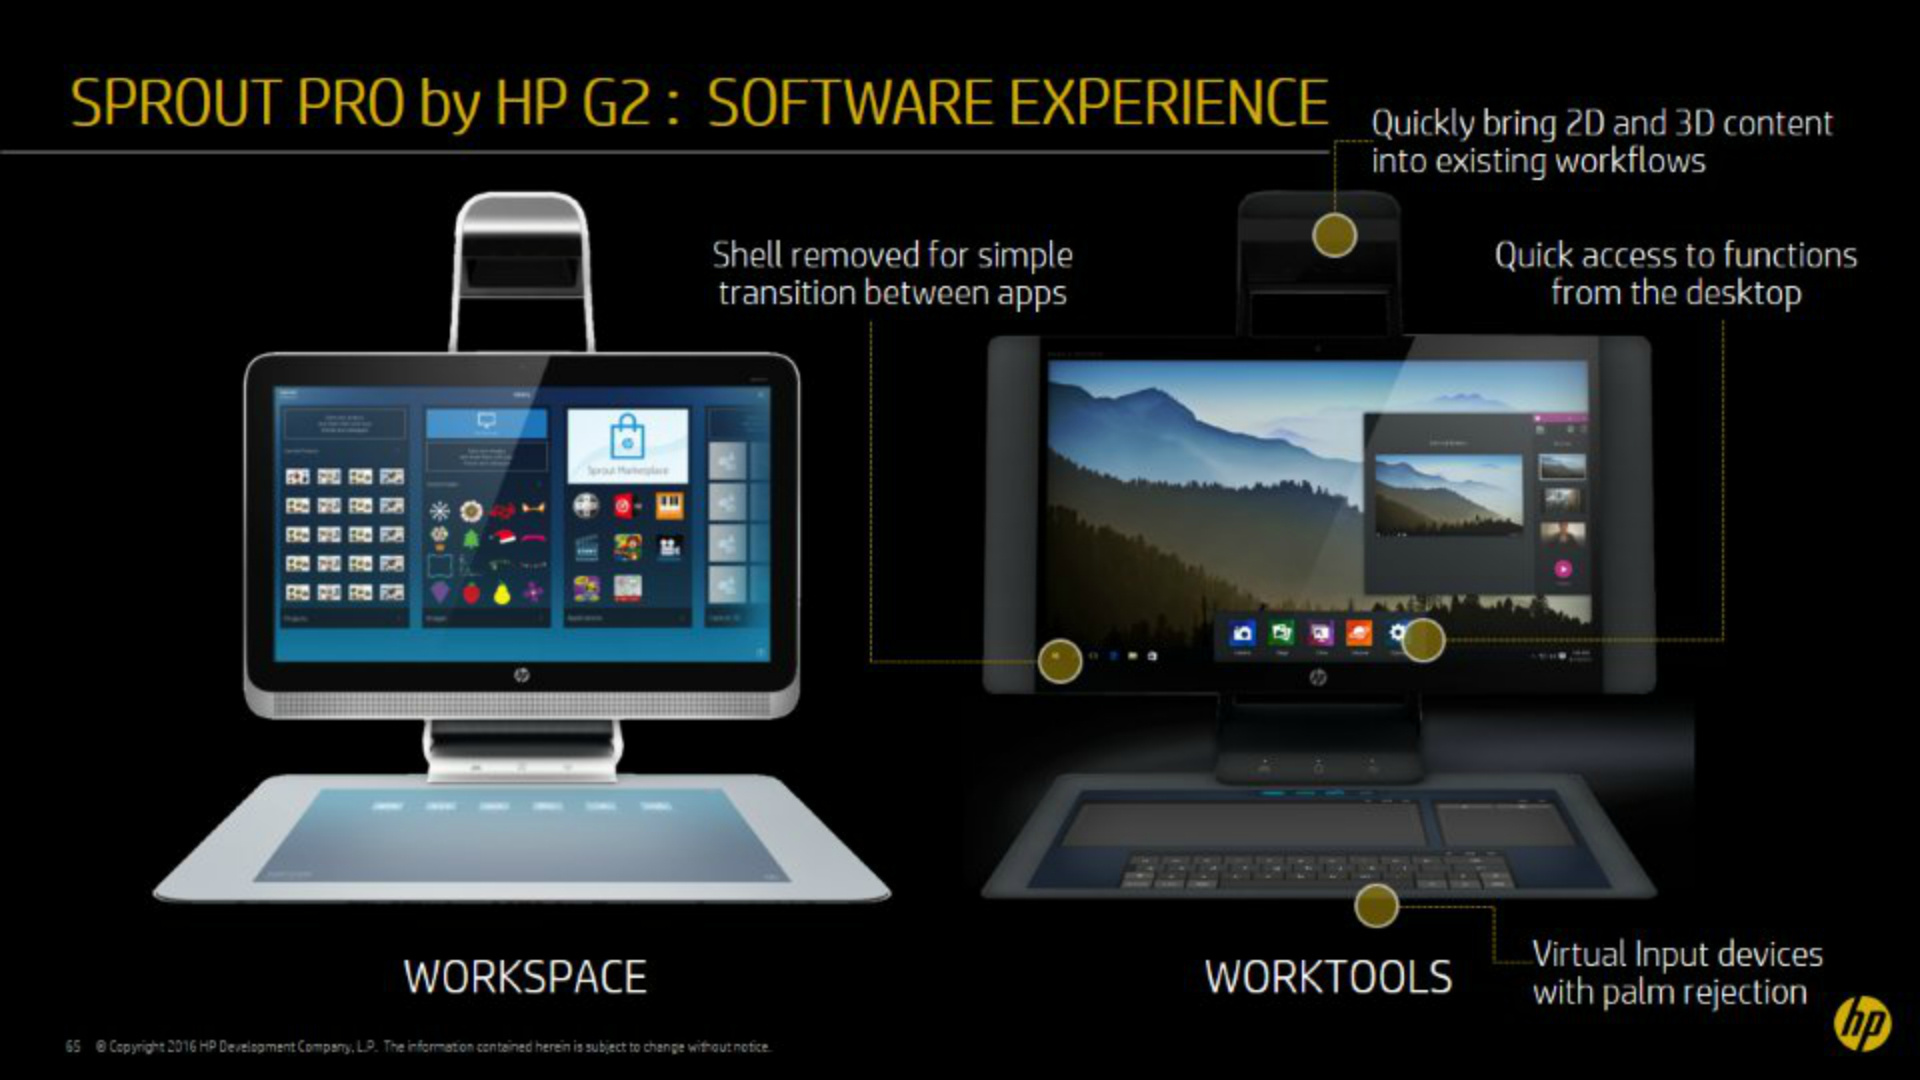 HP Sprout Pro G2